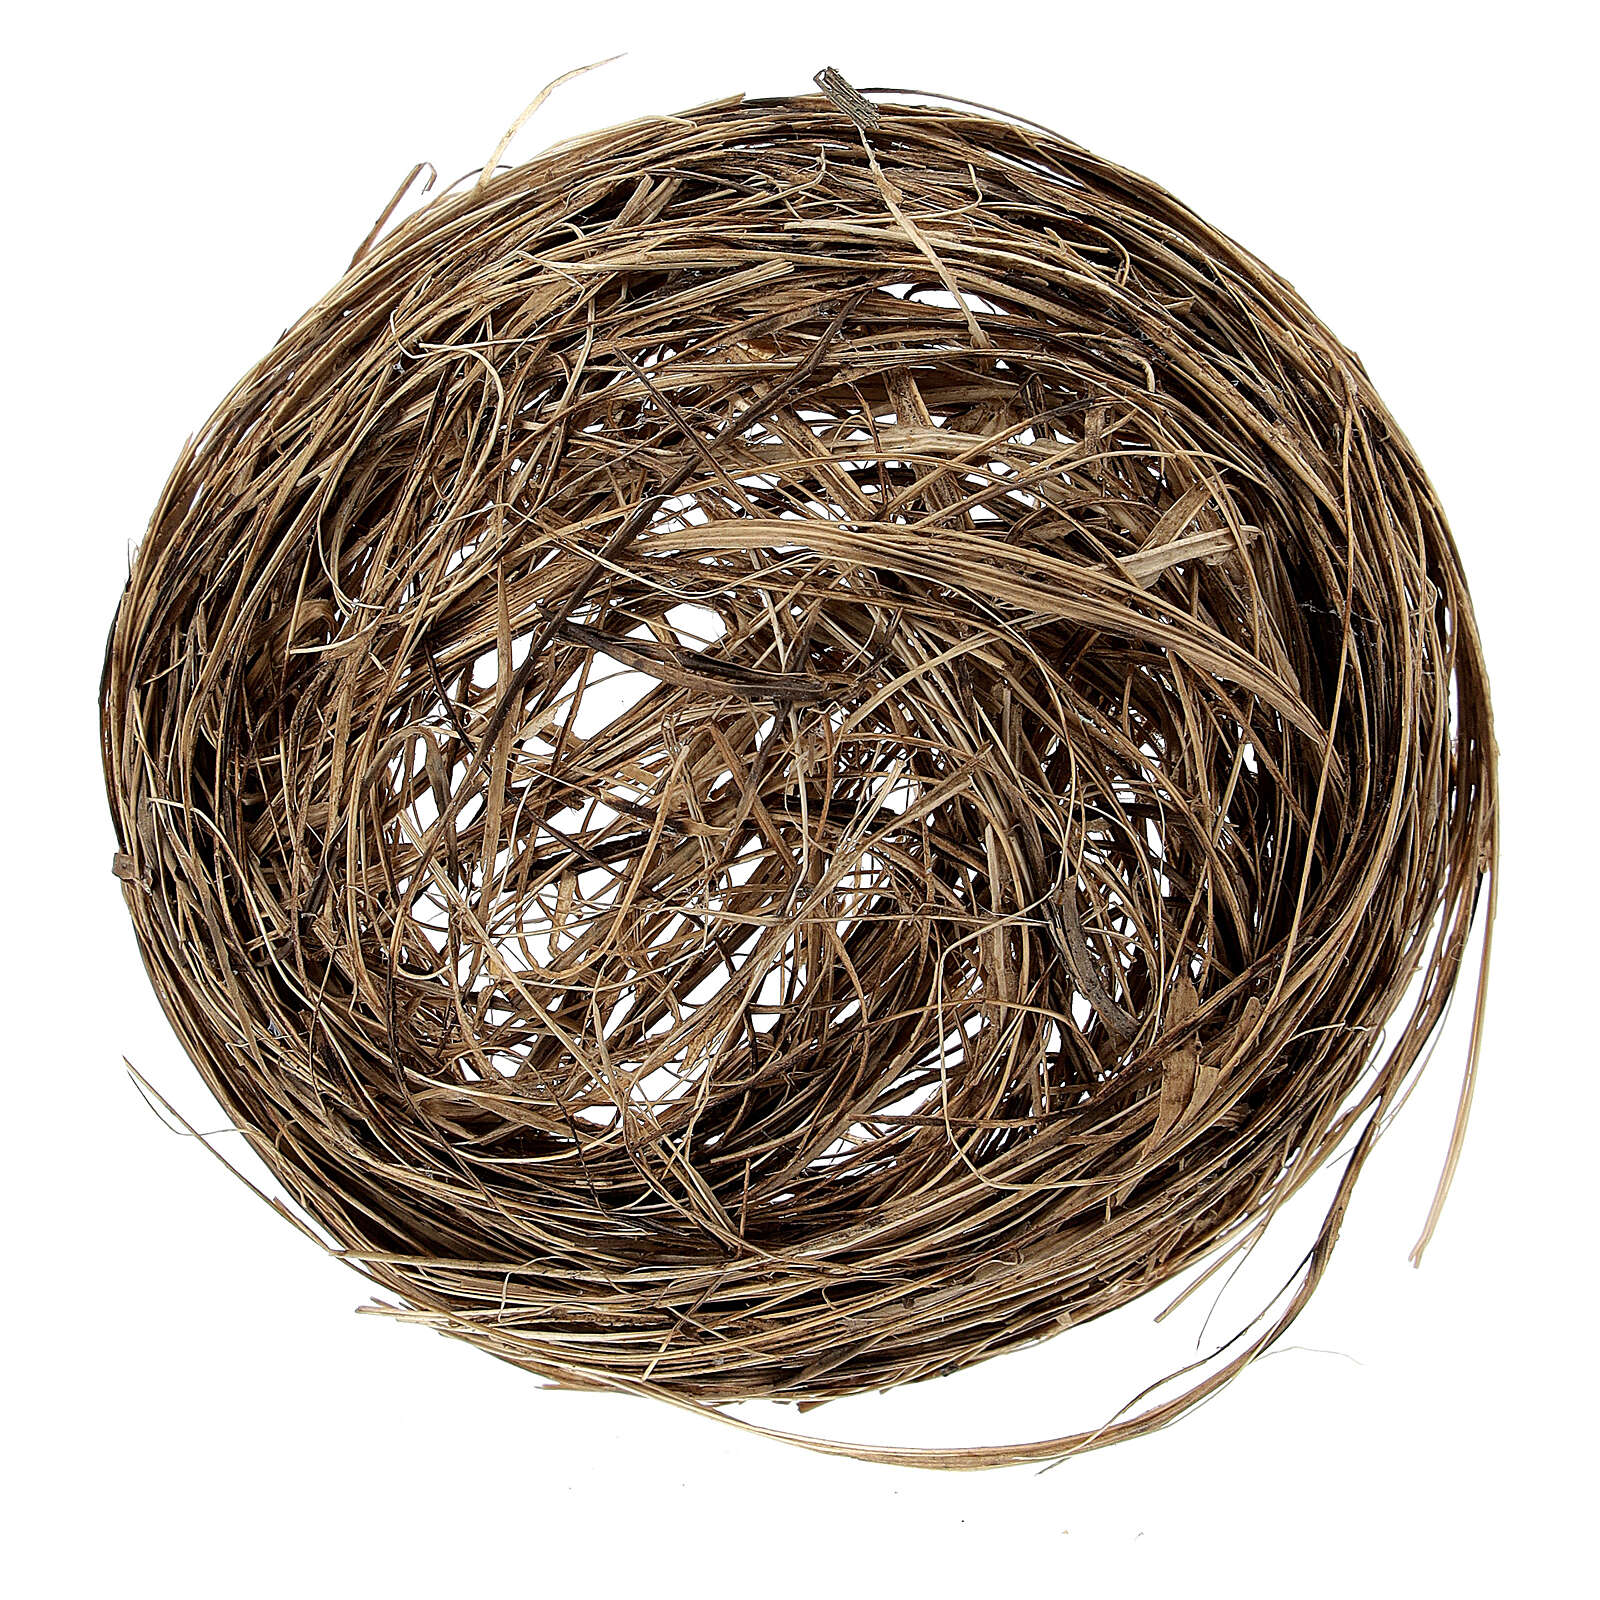 Miniature bird nest diam 6 cm 3